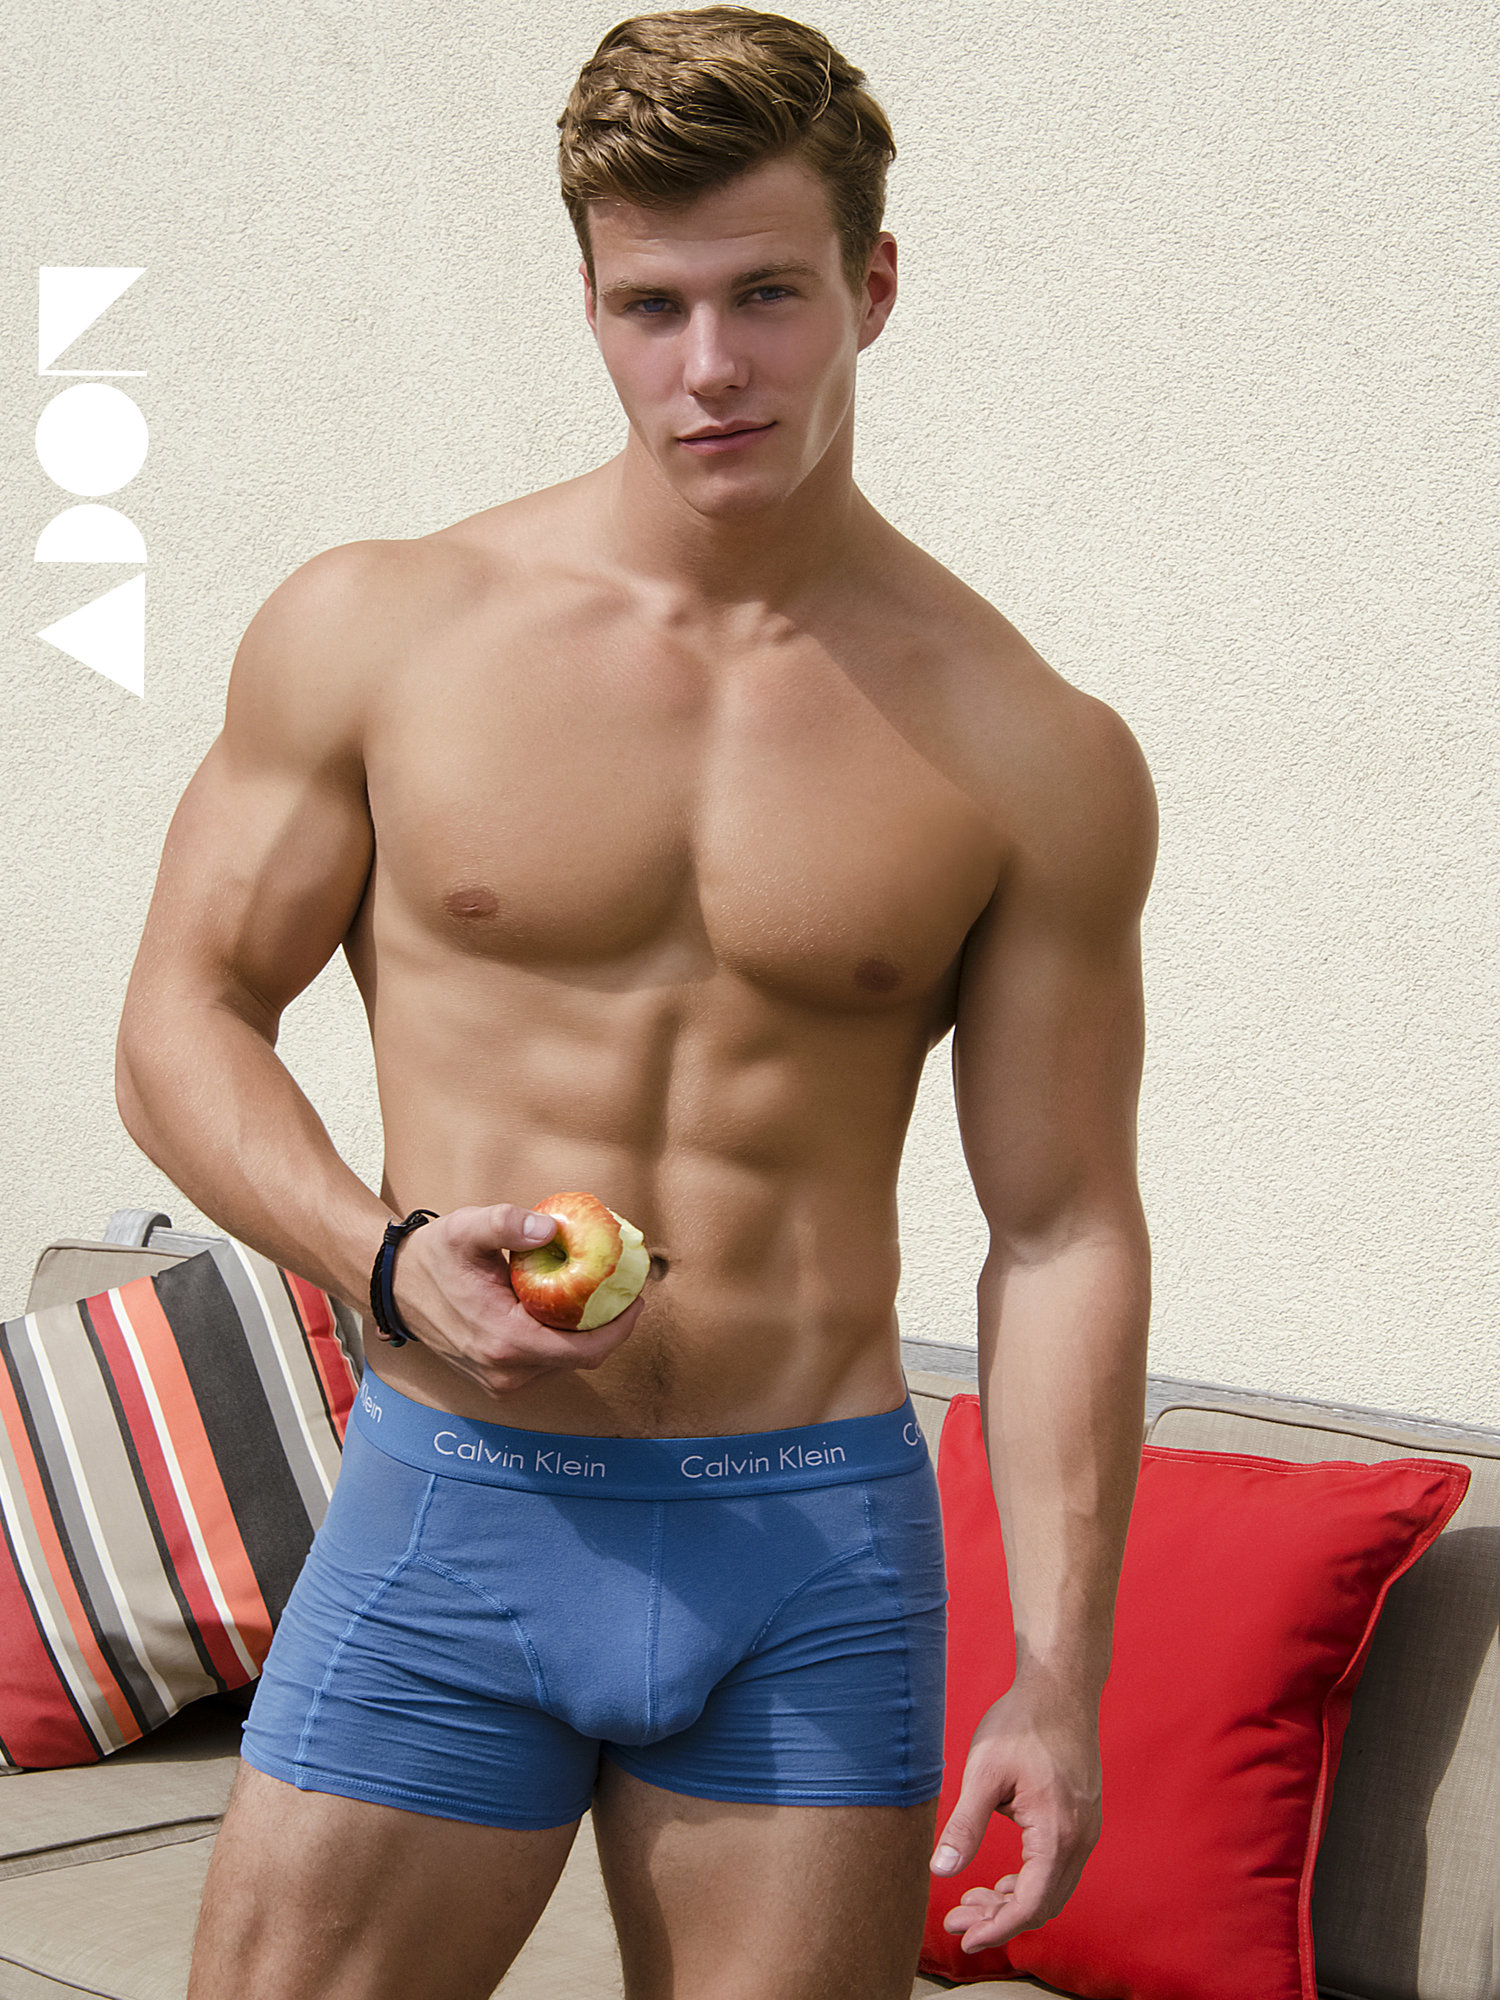 Adon Exclusive: Model Michael Dean By Rick Stockwell